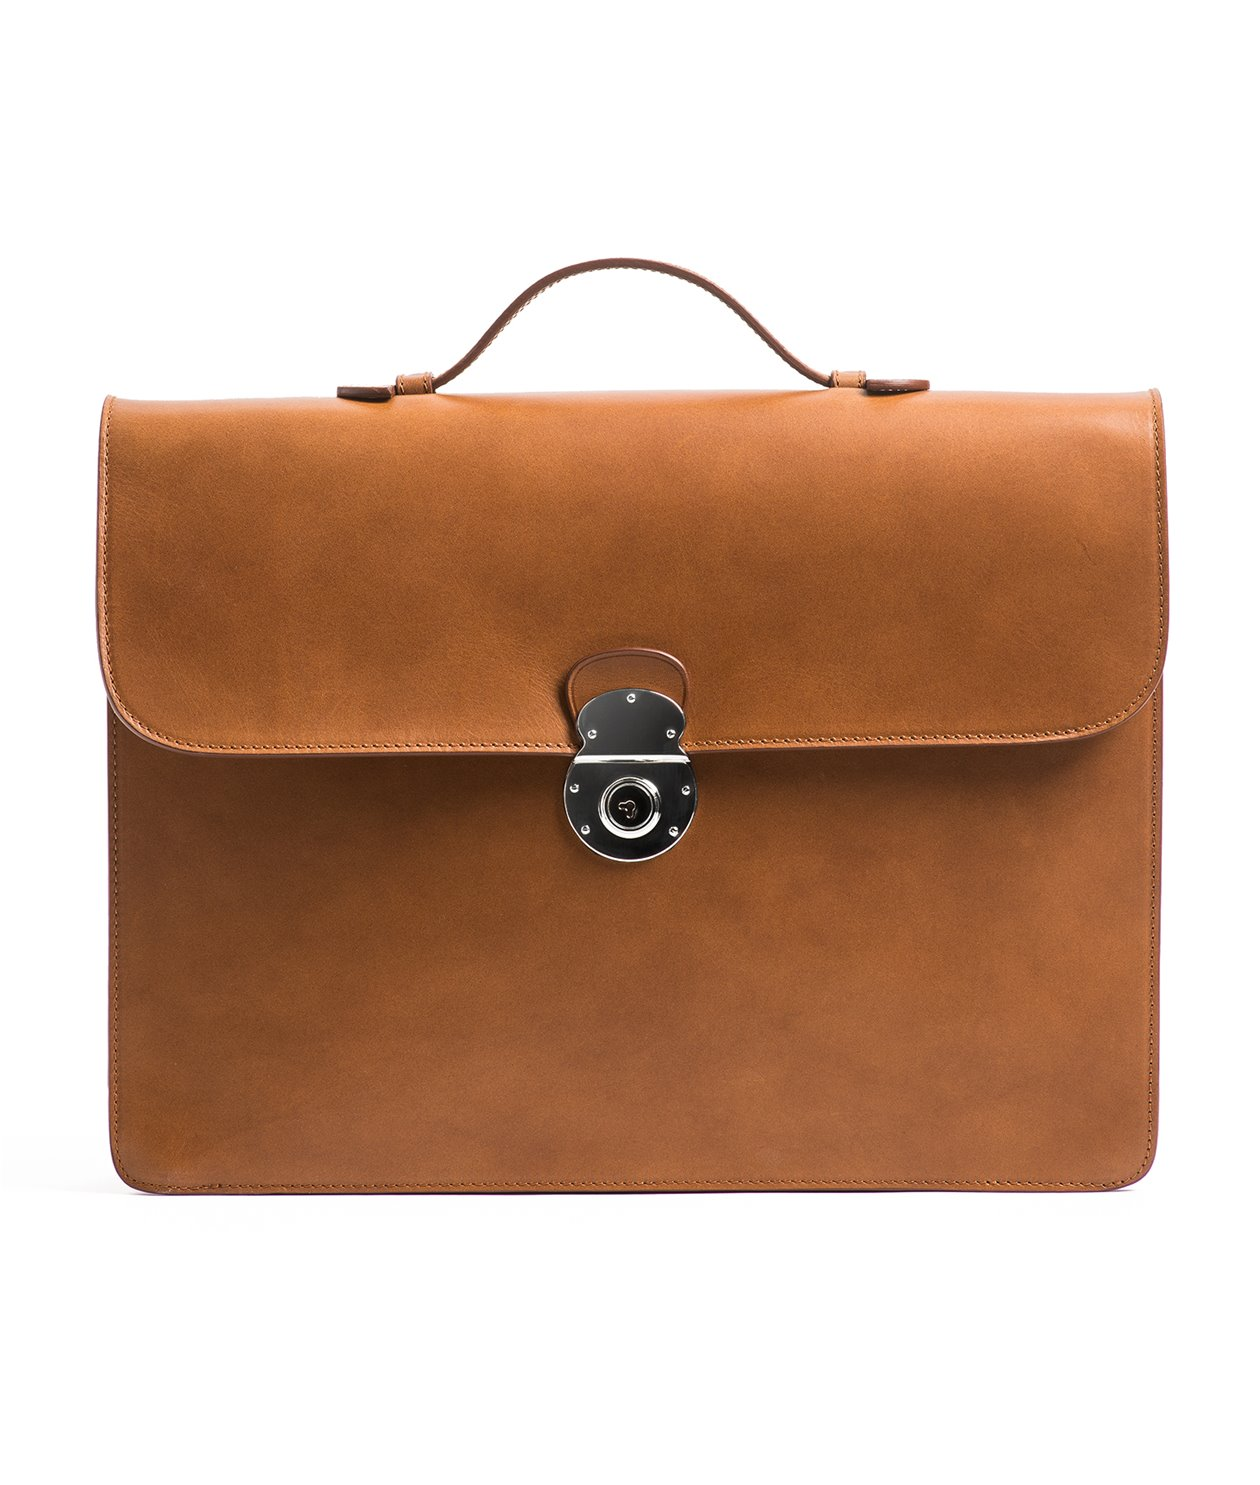 Palmgrens - Portfölj 1 Fack Natur - Genuine handcrafted leather ... 2297b7f23dd43